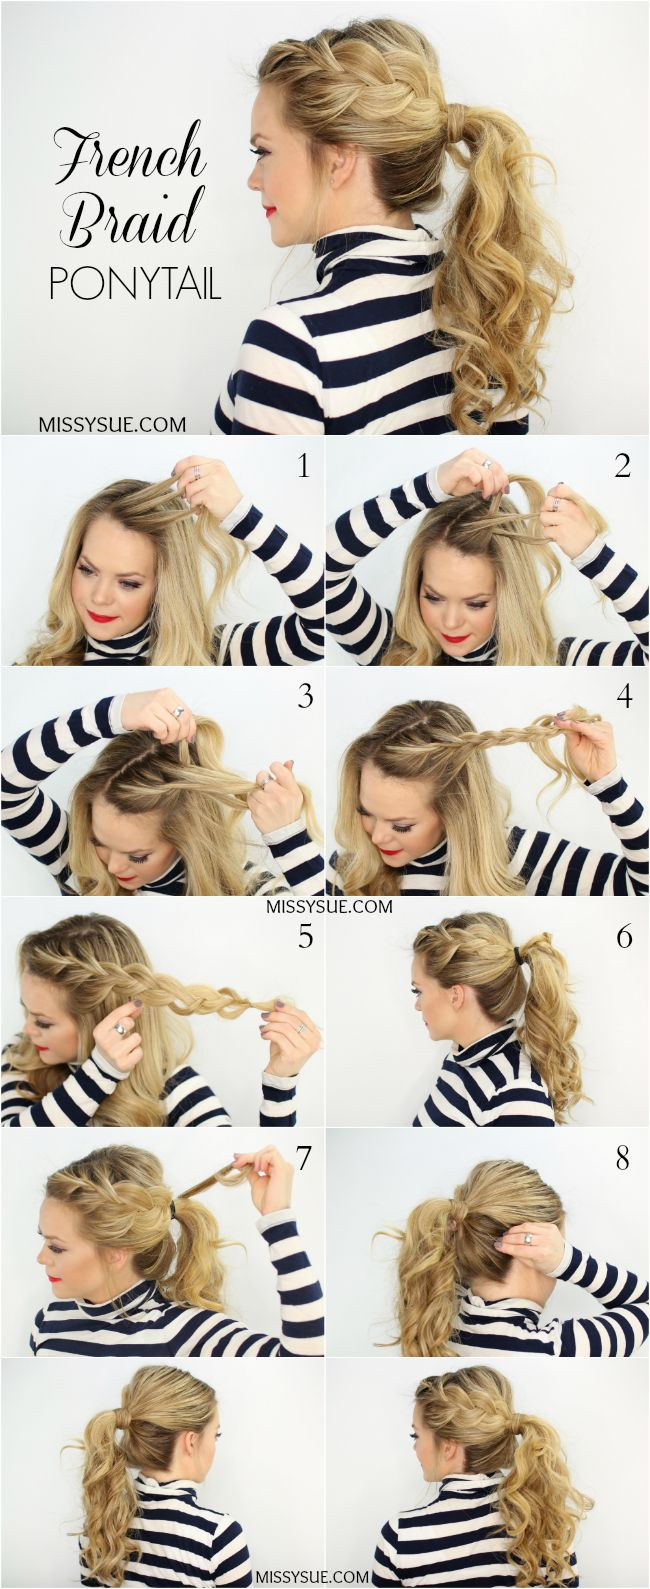 French Braid Ponytail Hairstyle Tutorial